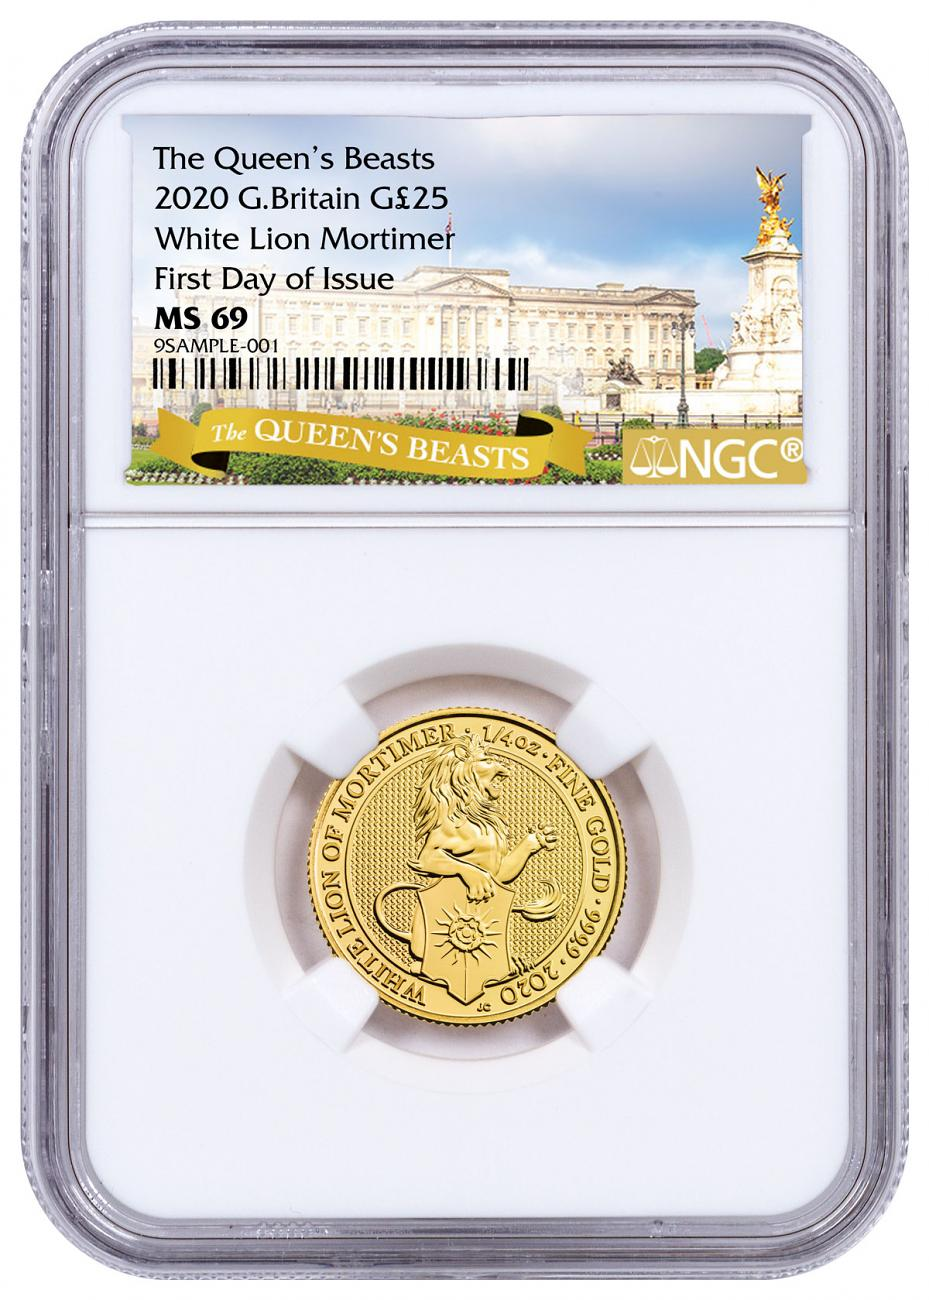 2020 Great Britain 1/4 oz Gold Queen's Beasts - White Lion of Mortimer £25 Coin NGC MS69 FDI Exclusive Queen's Beasts Label